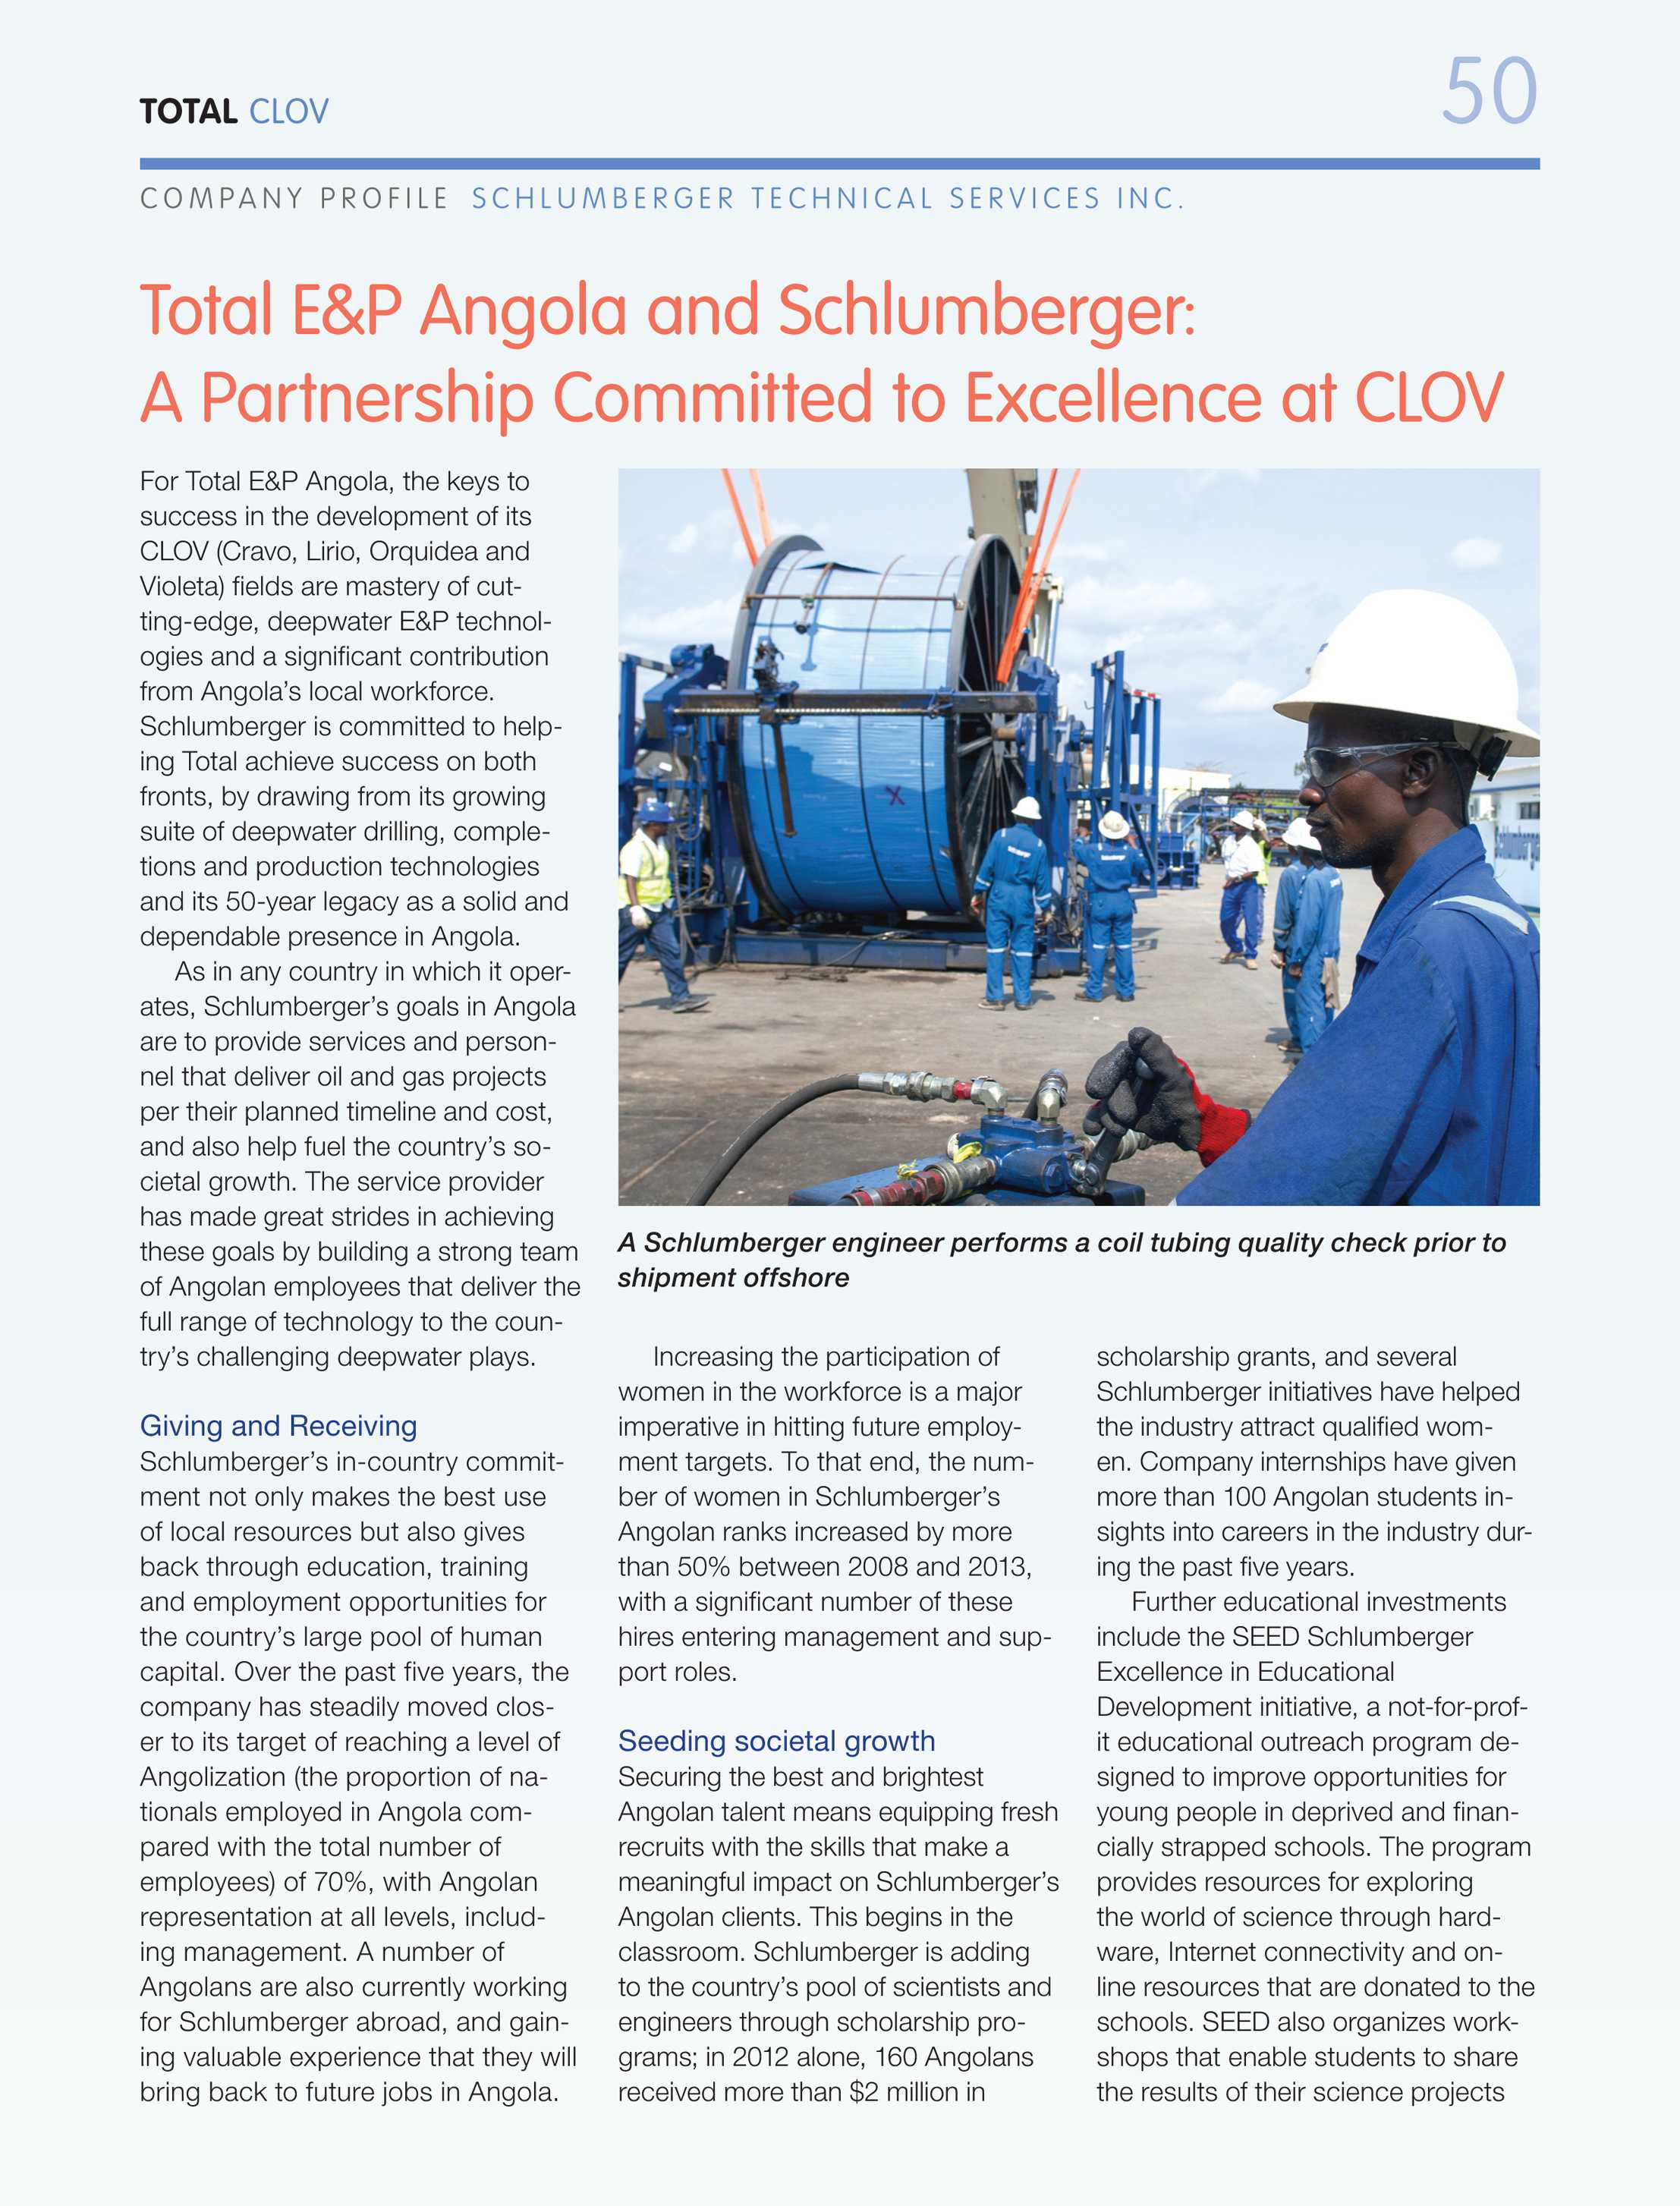 Oil & Gas Journal - September 1, 2014 - page Clov50